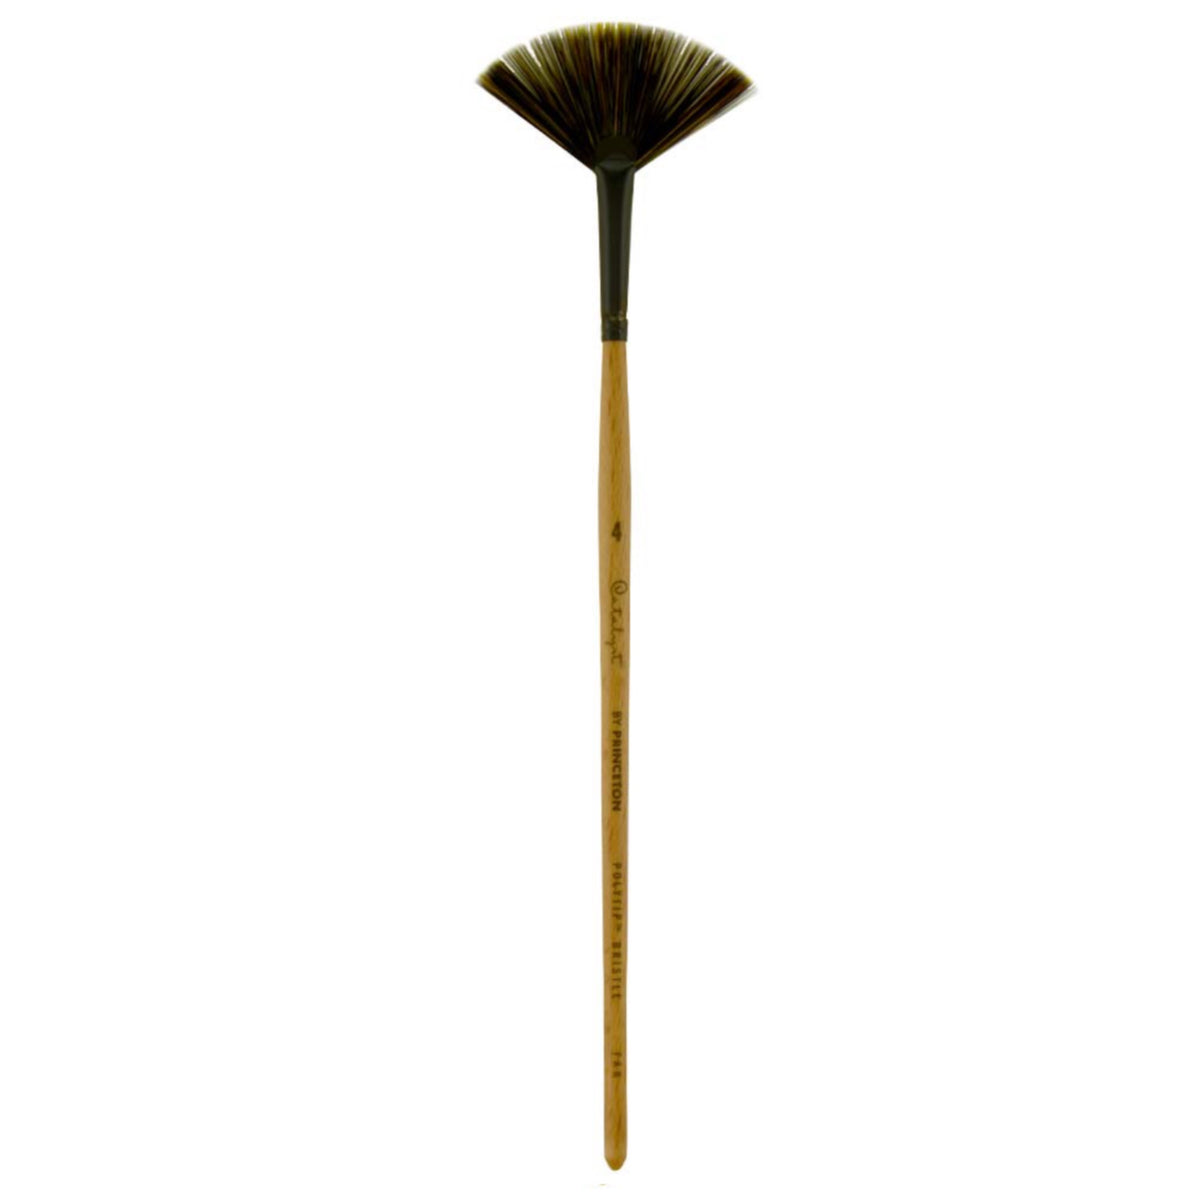 Princeton Catalyst Polytip Bristle Short-Handle Paint Brushes